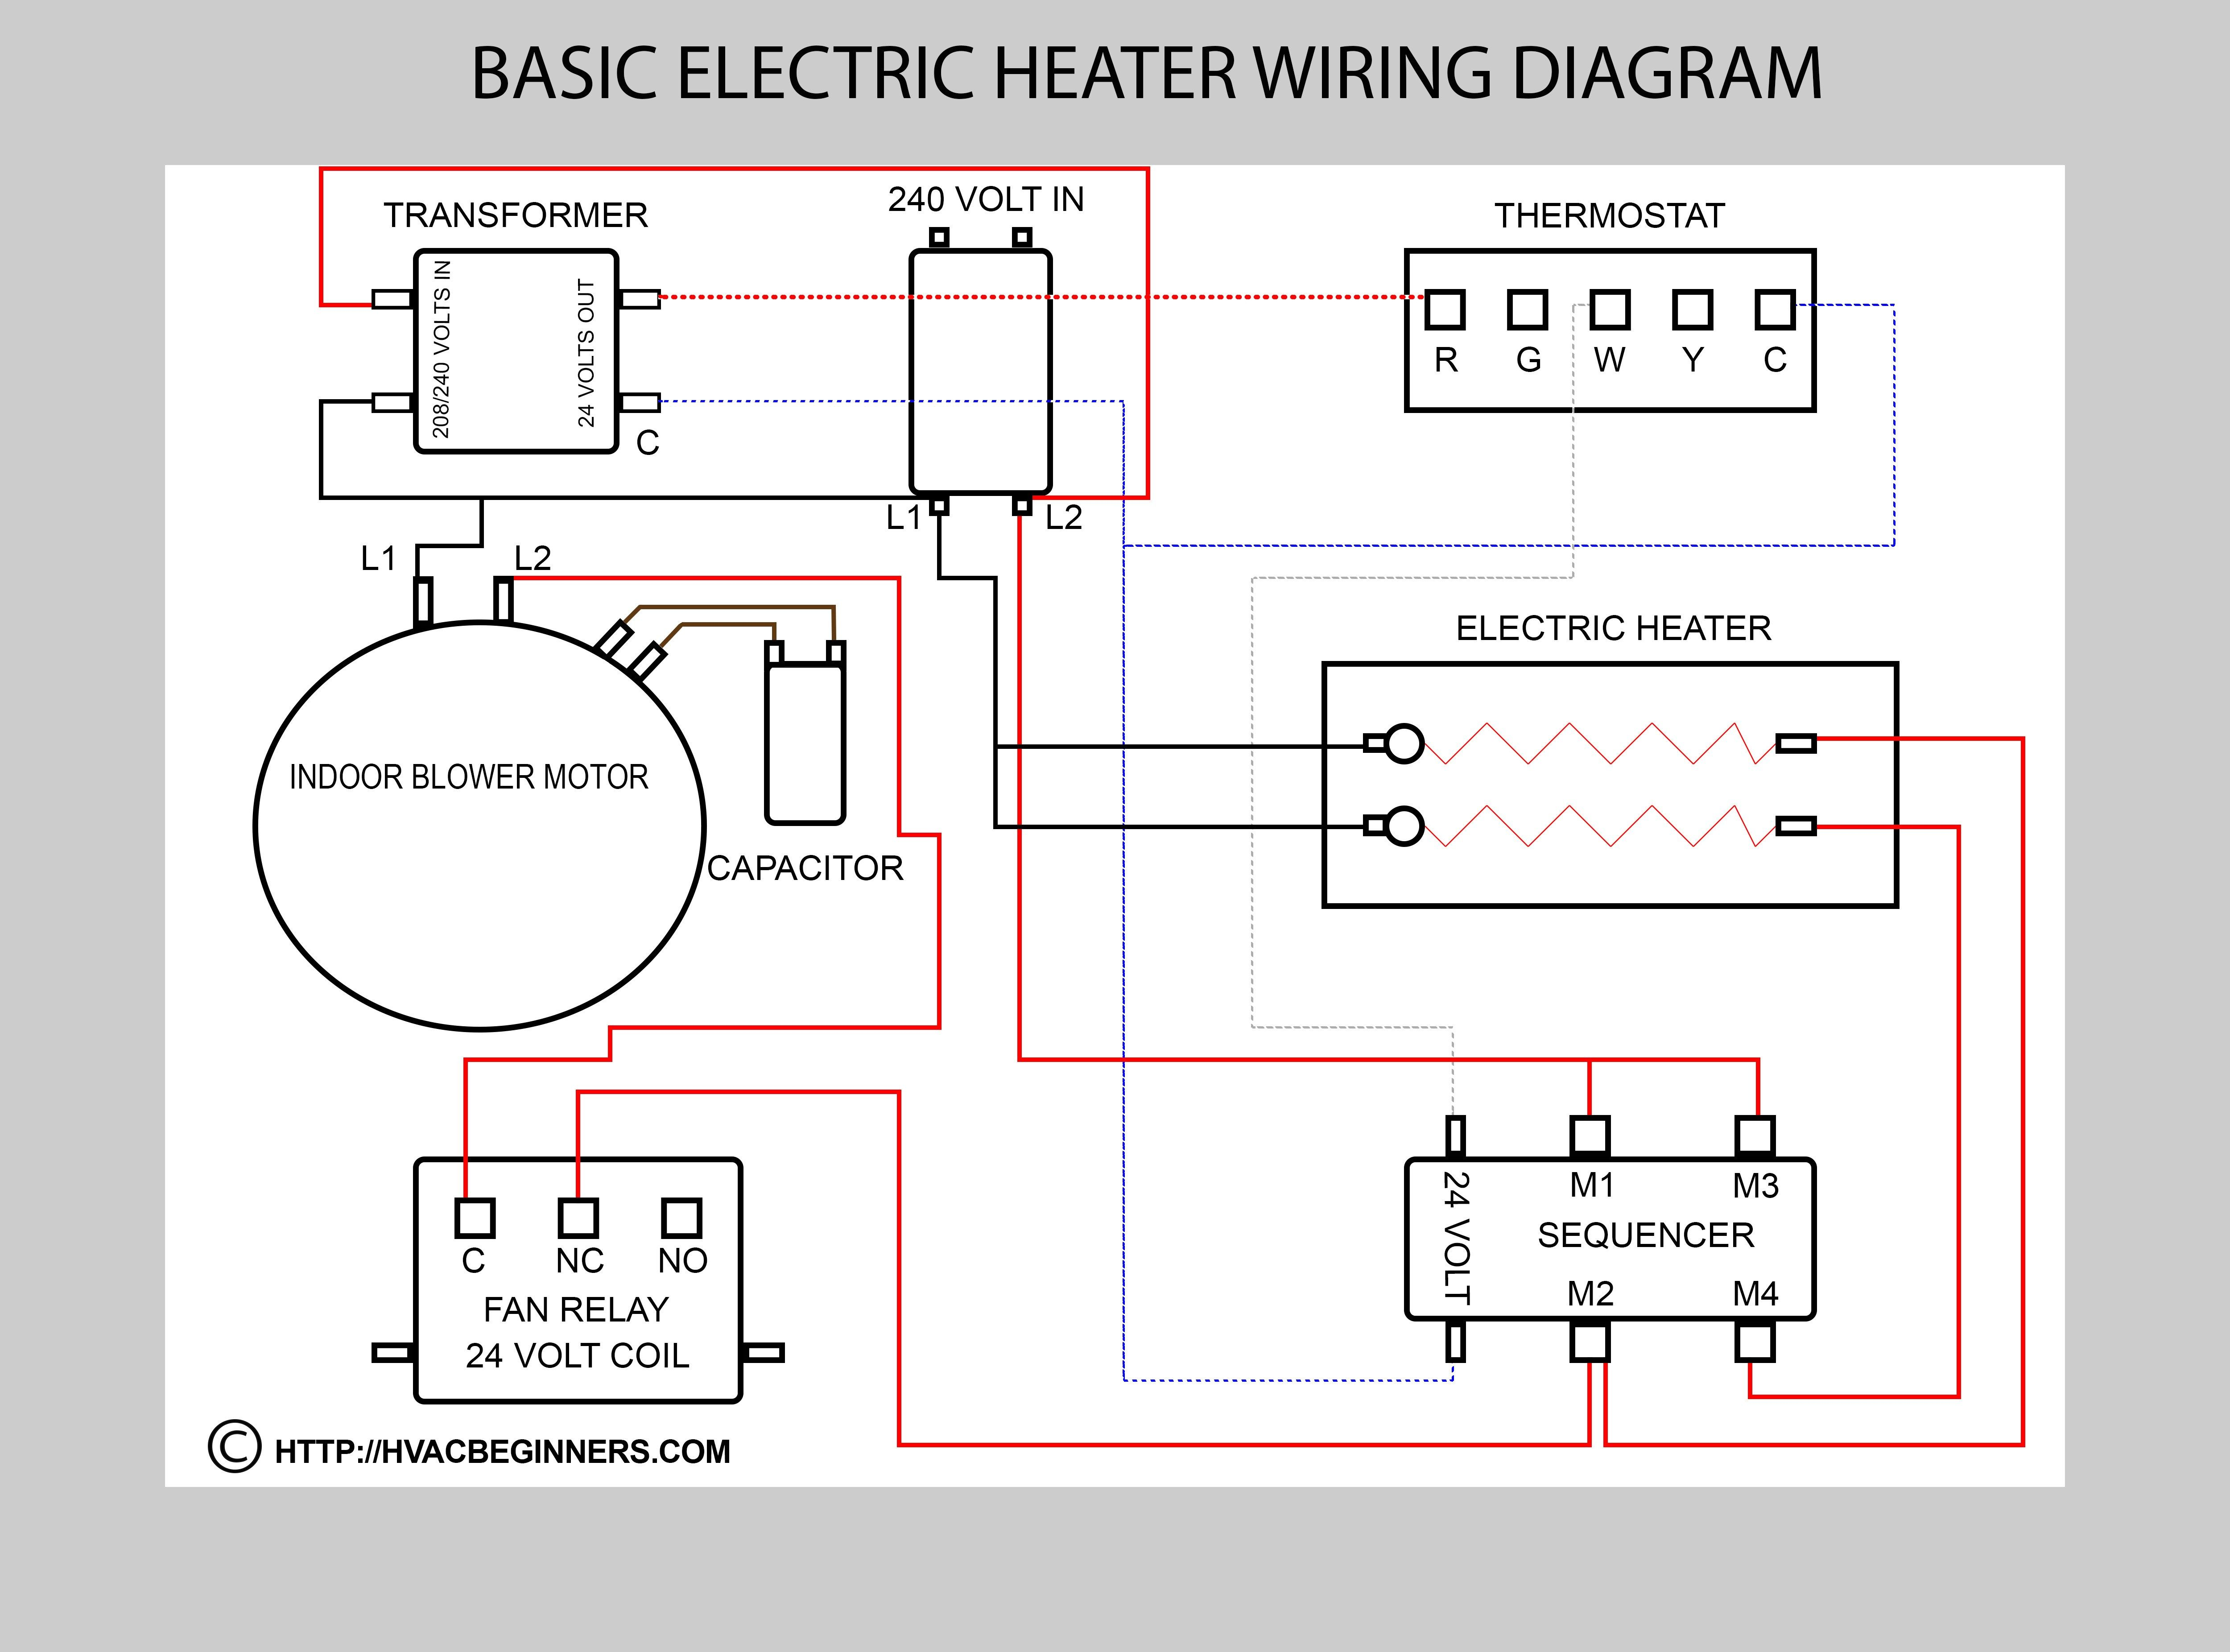 How To Add A C Wire An Old Lennox System Home Improvement For New Within Furnace Thermostat Basic Electrical Wiring Thermostat Wiring Electrical Wiring Diagram